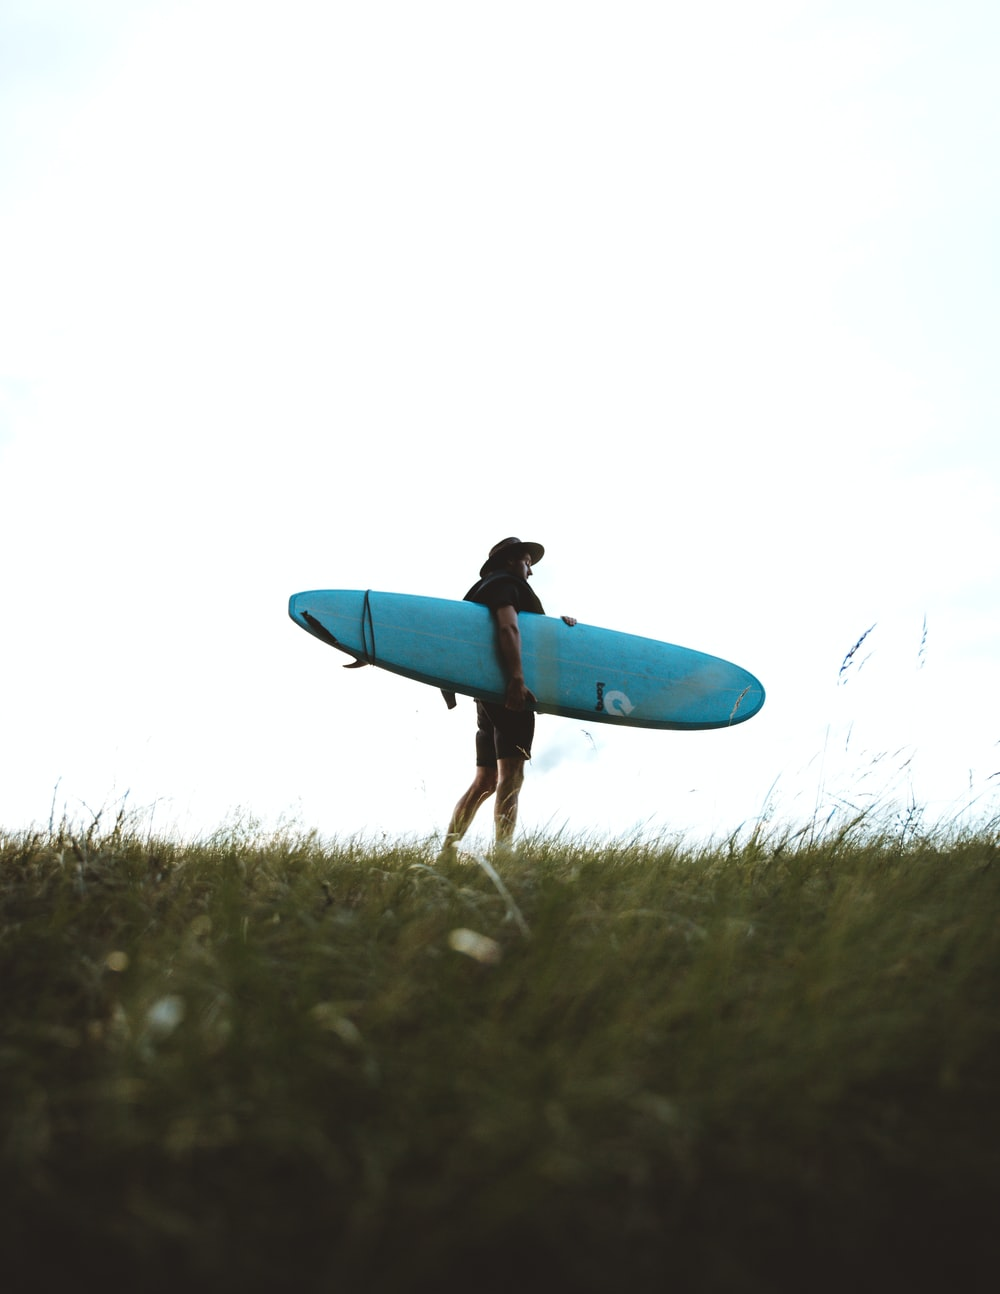 man holding teal surfboard at daytime